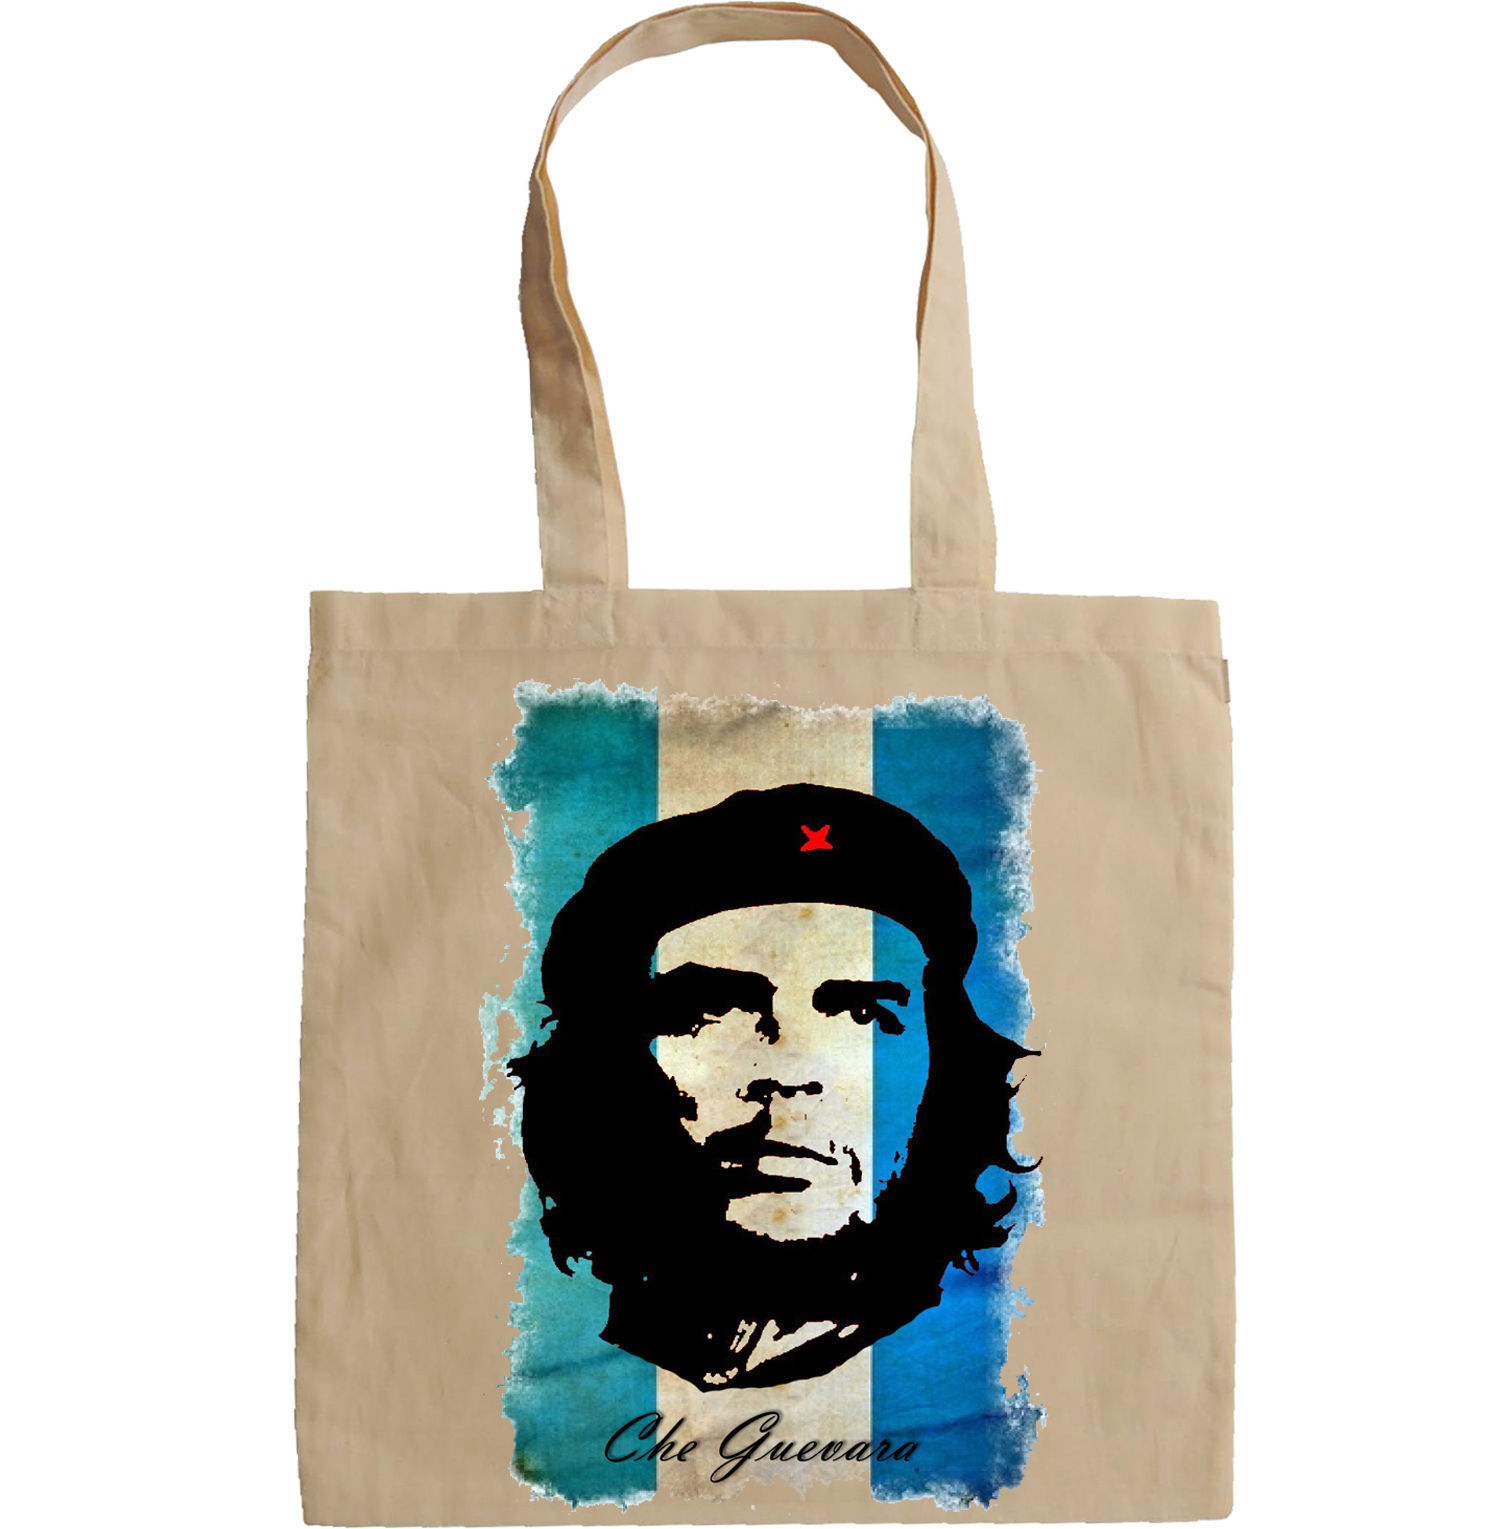 CHE GUEVARA ARGENTINA FLAG - NEW AMAZING GRAPHIC HAND BAG/TOTE BAG